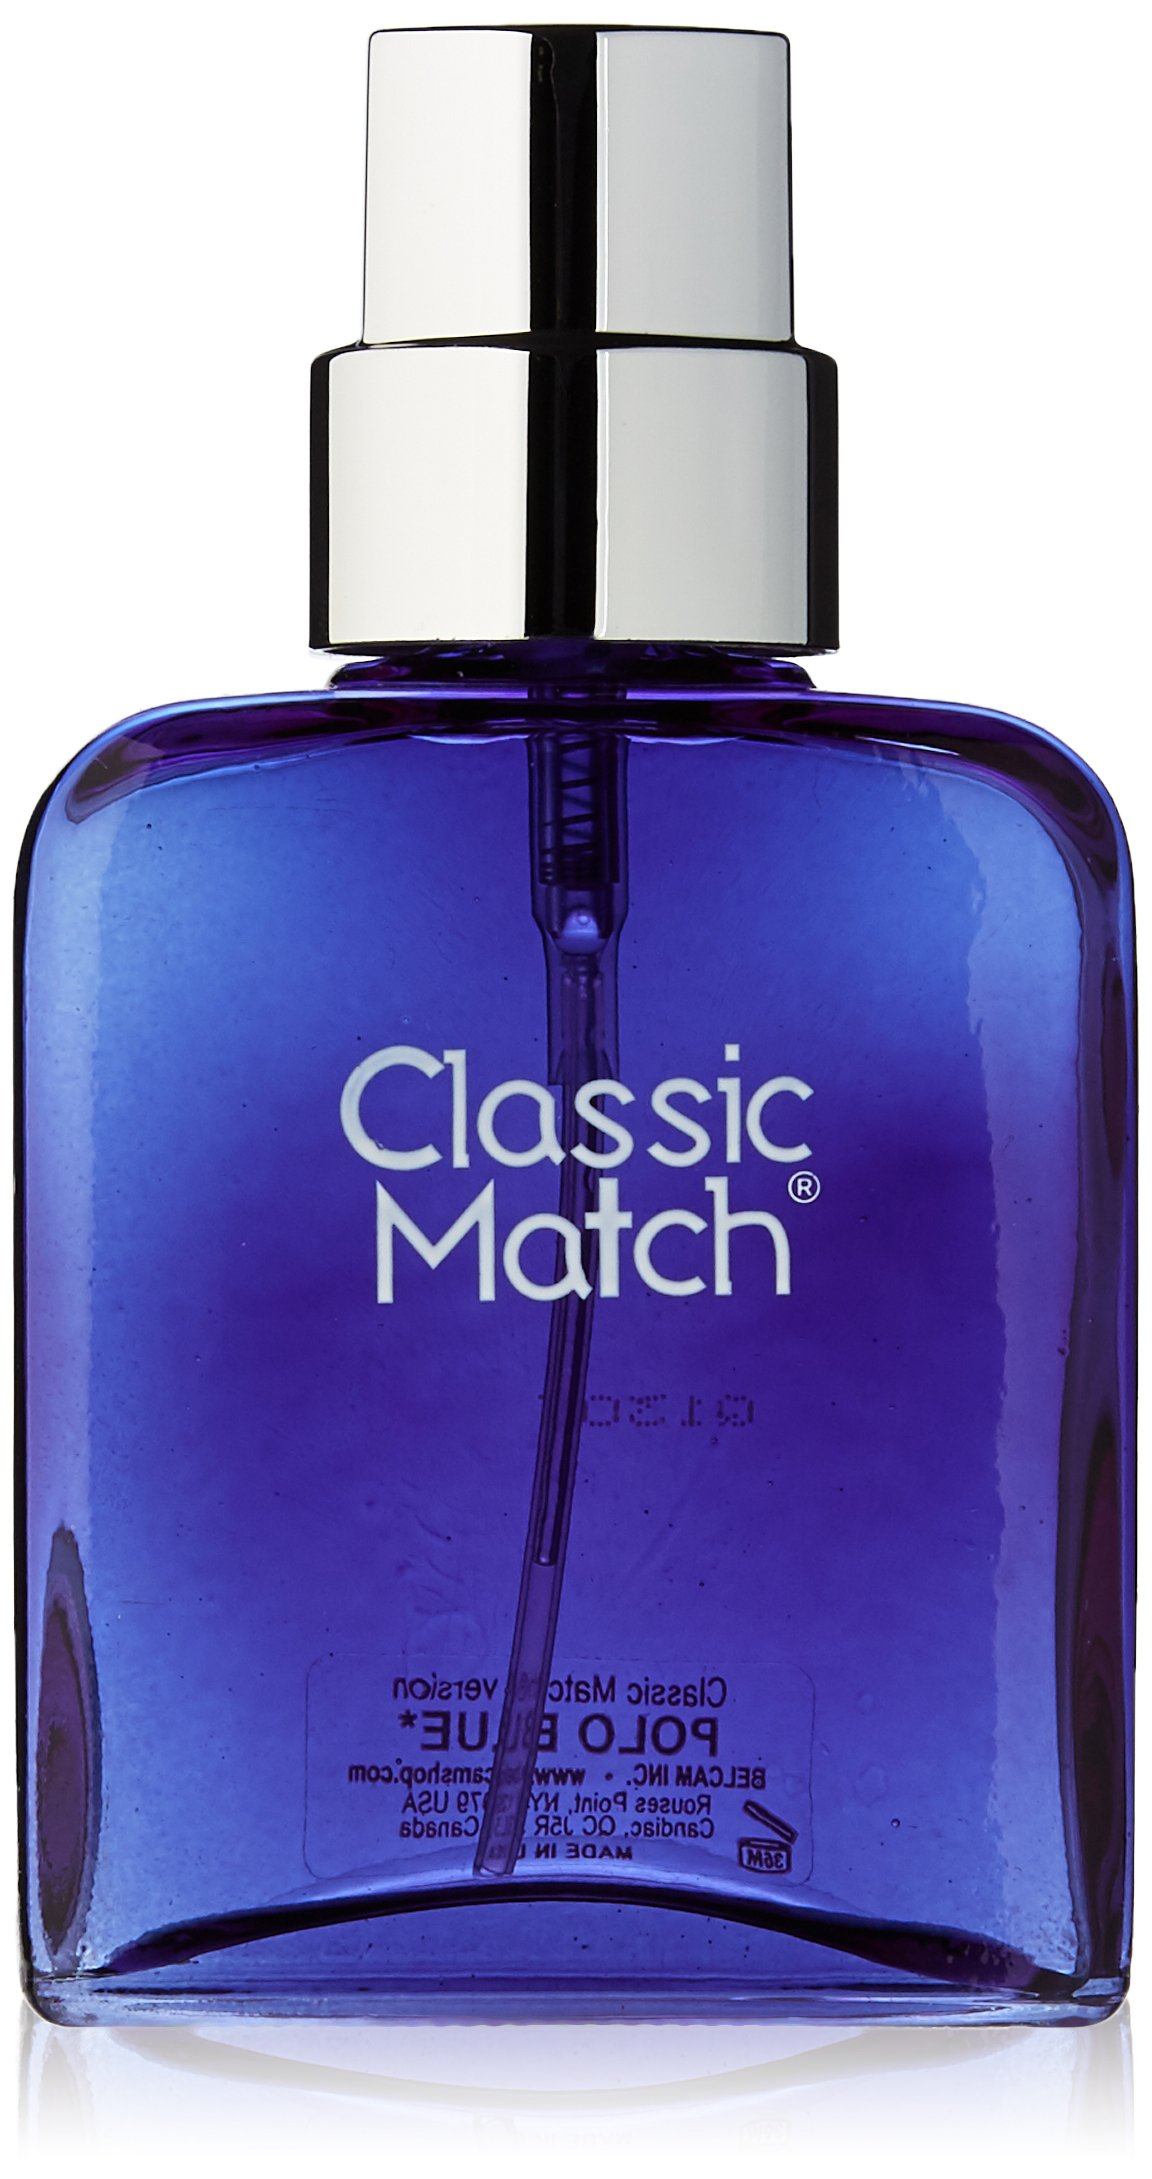 Classic Match, version of Polo Blue, Eau de Toilette Spray for Men